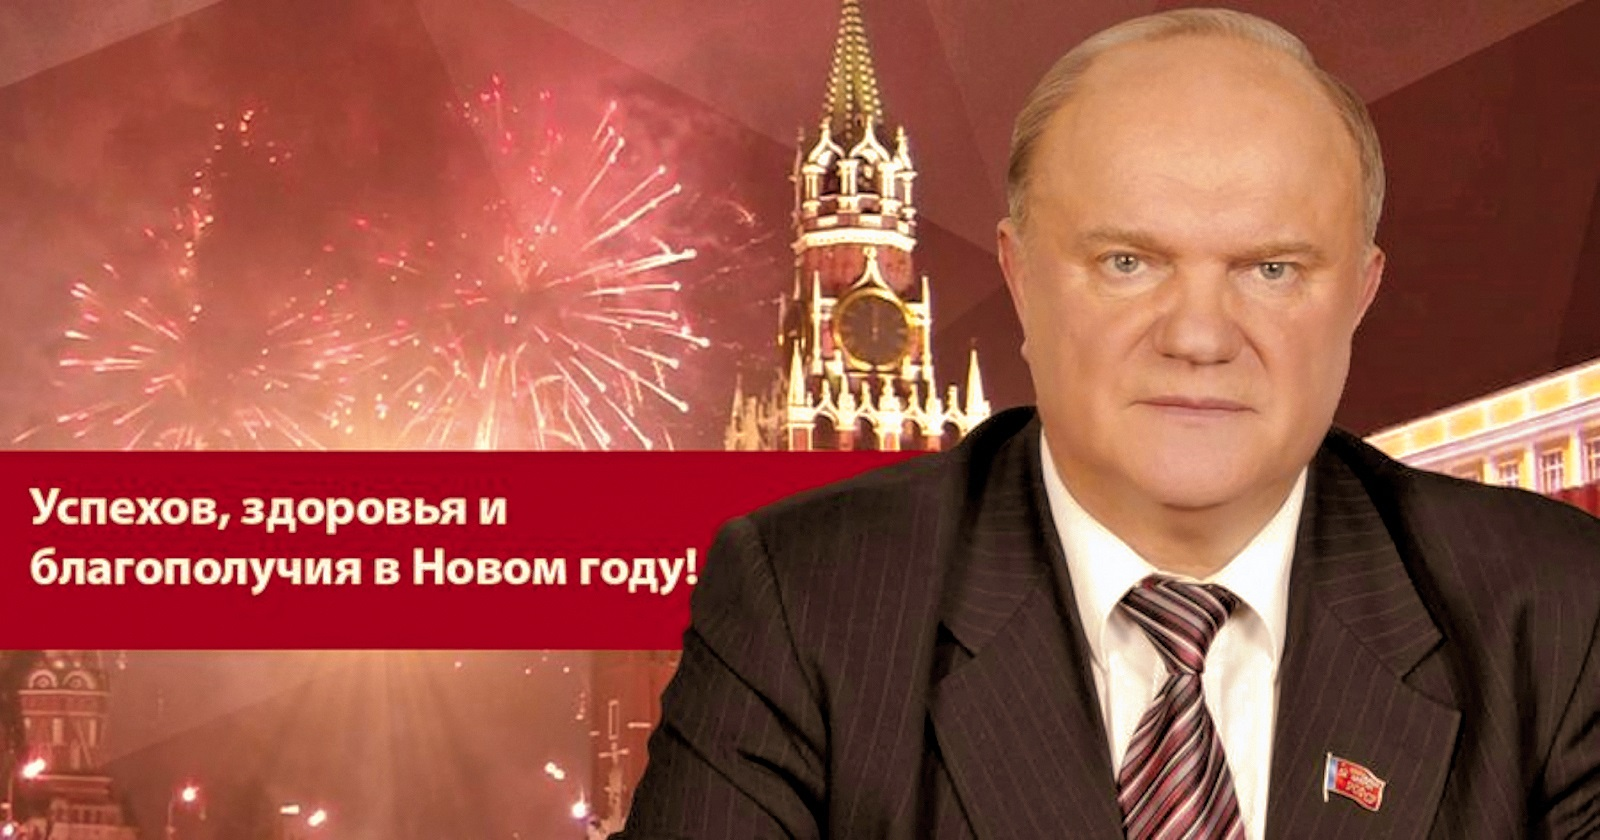 New year greetings from comrade zyuganov good luck health and new year greetings from comrade zyuganov good luck health and prosperity in the new year voices from russia kristyandbryce Gallery